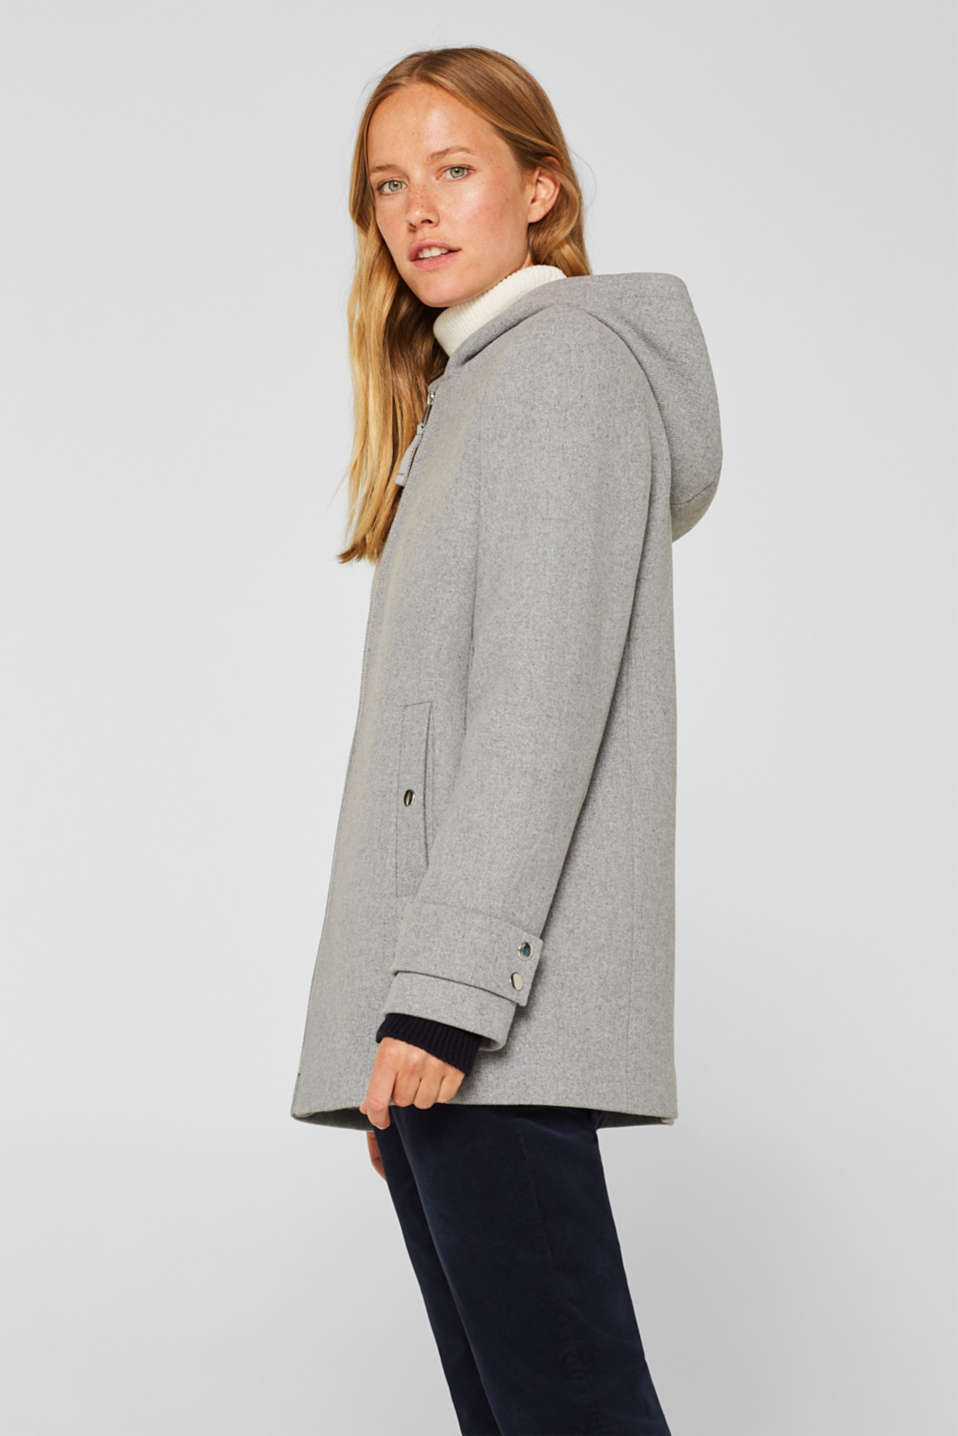 Jackets outdoor woven, LIGHT GREY 5, detail image number 6